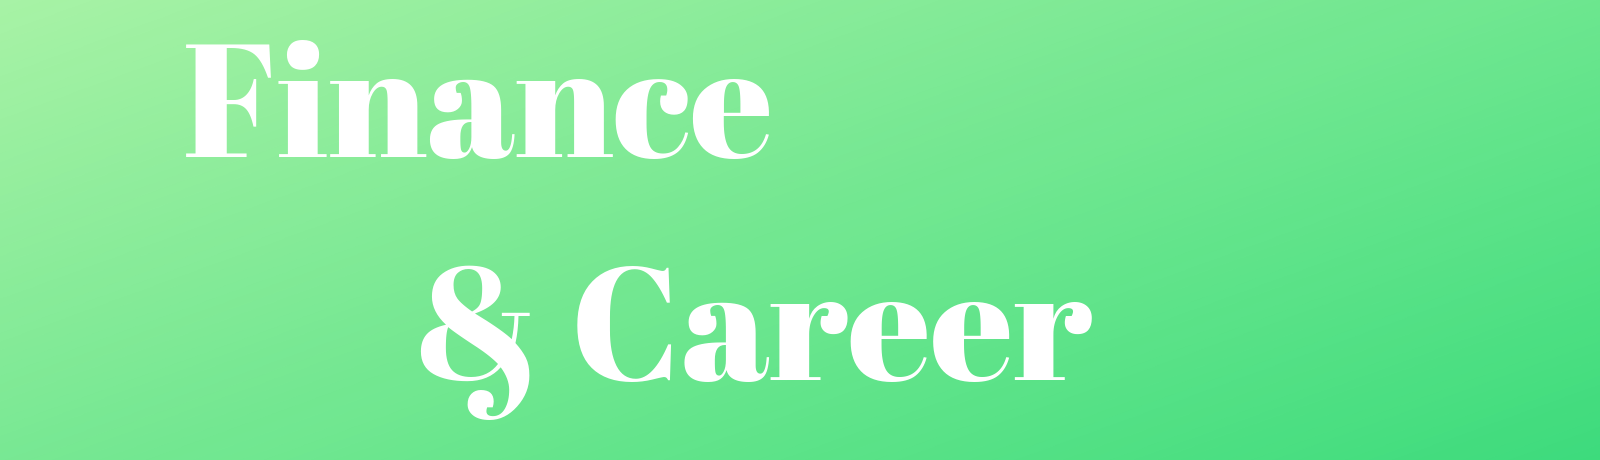 Finance & Career